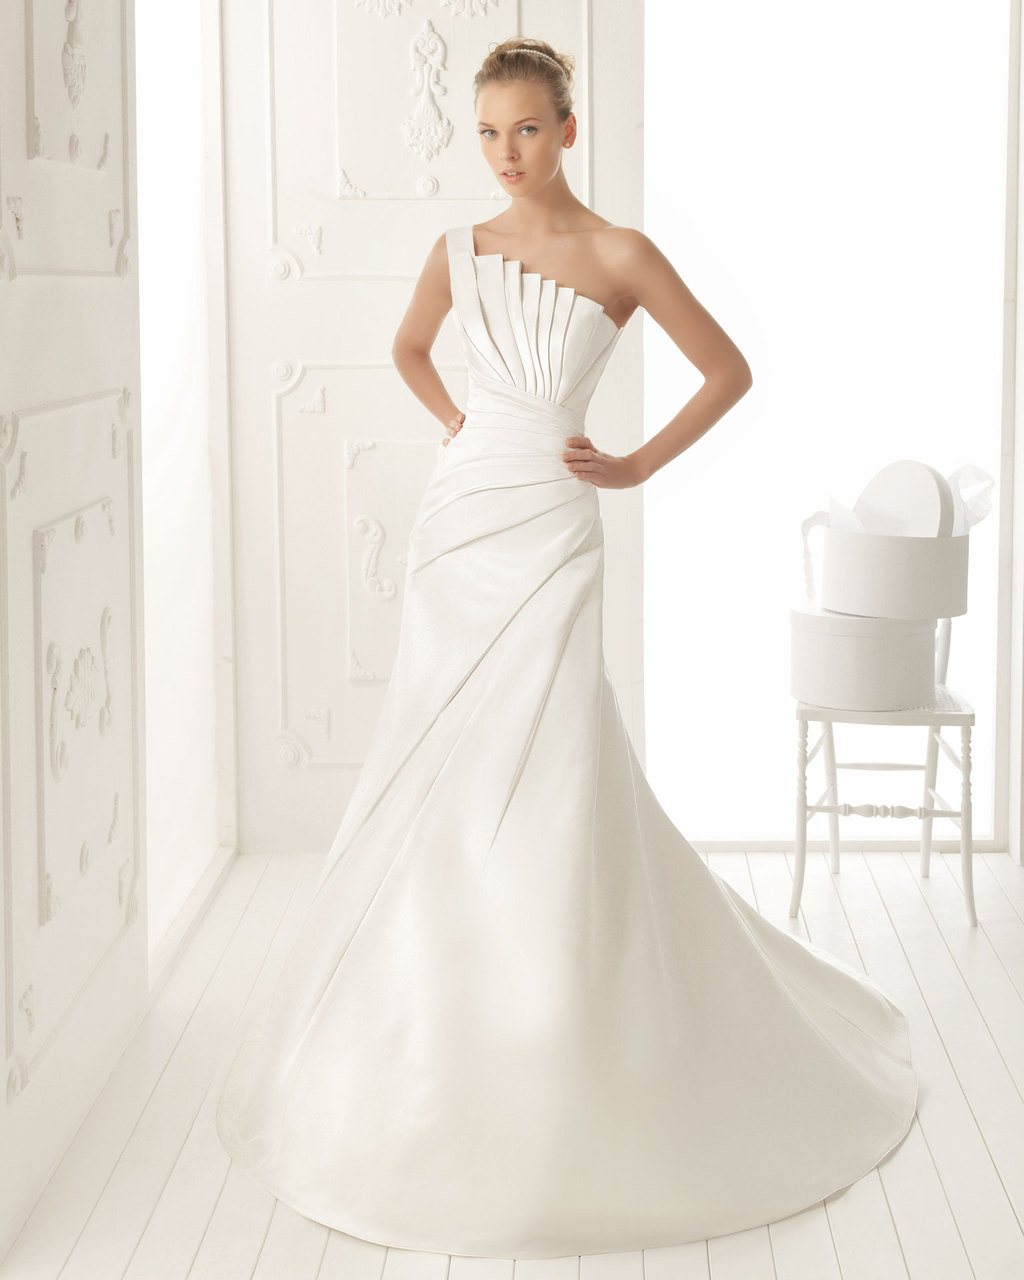 Aire-barcelona-wedding-dress-2013-vintage-bridal-collection-valle.full